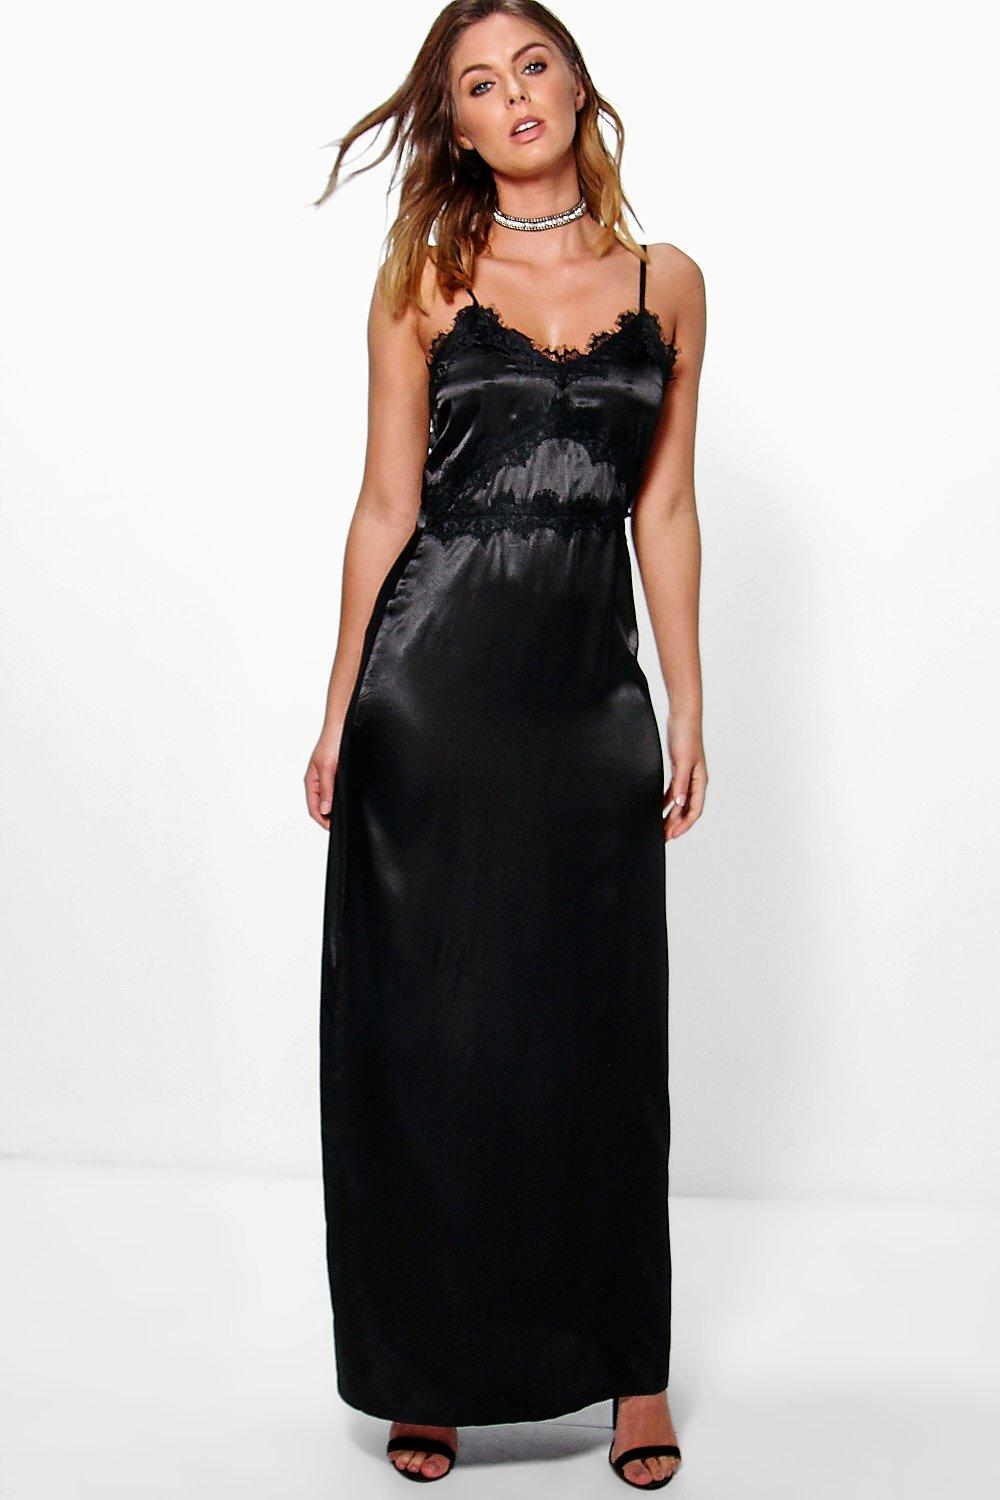 Boutique Mia Satin Lace Trim Slip Maxi Dress